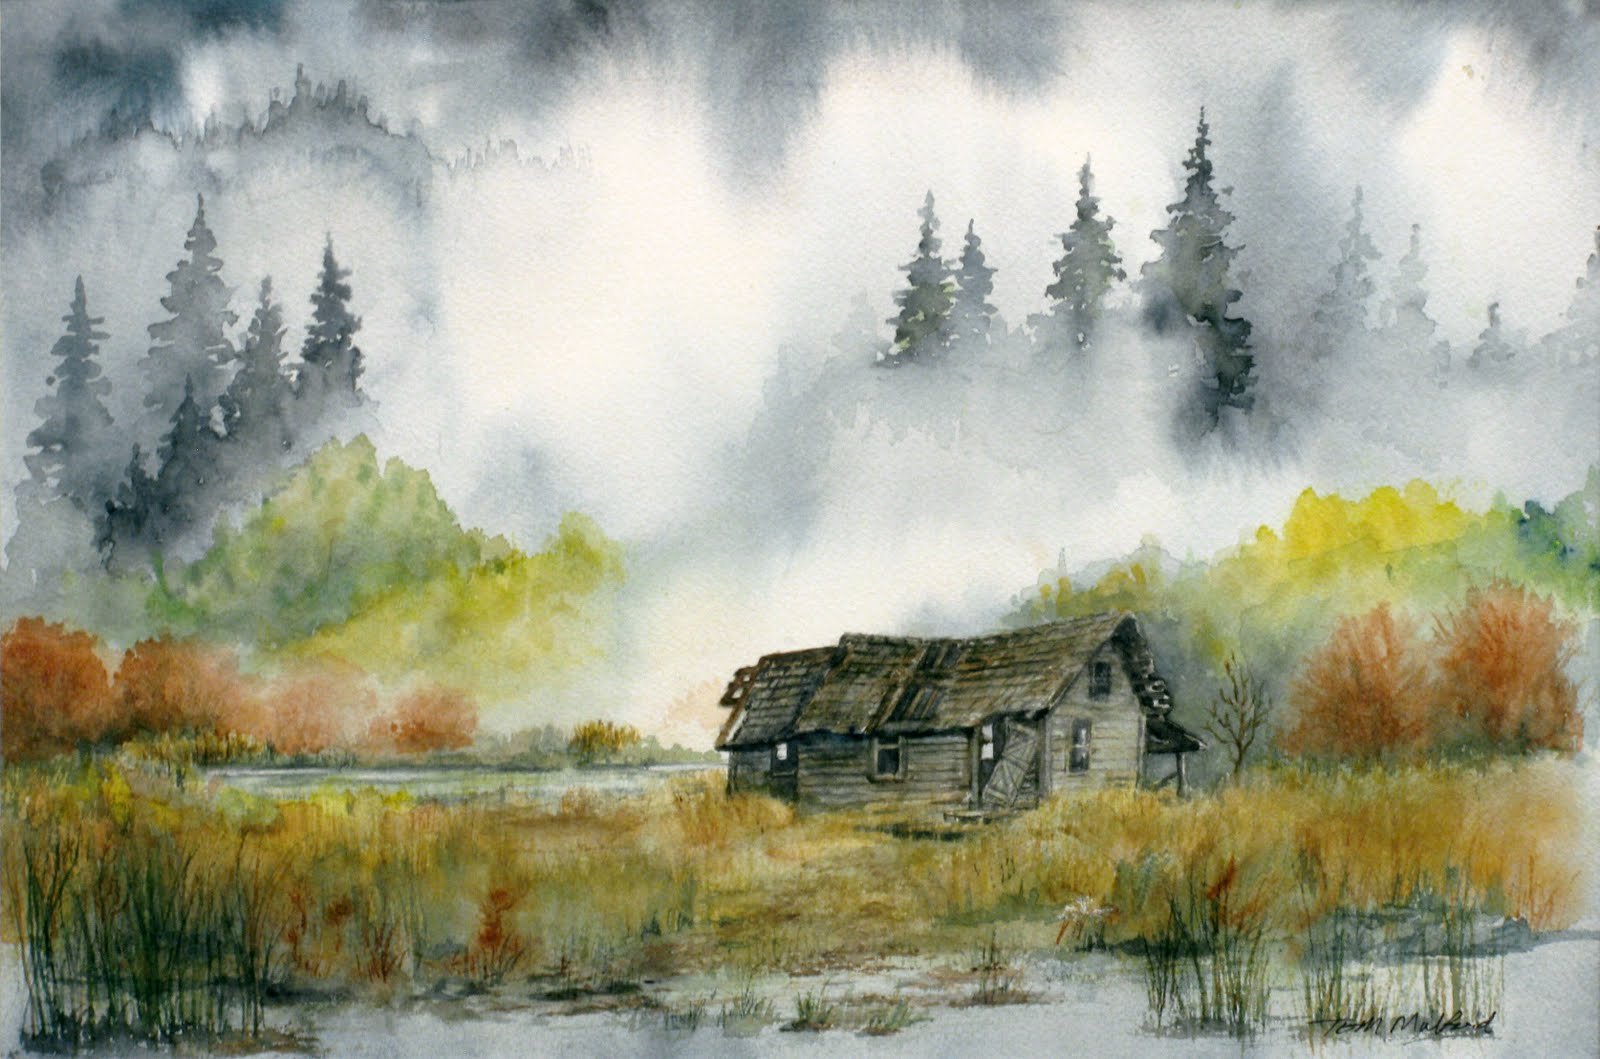 Pin By Charlotte Spiss On More Watercolor Pinterest. Full resolution‎  photo, nominally Width 1600 Height 1059 pixels, photo with #674B1C.